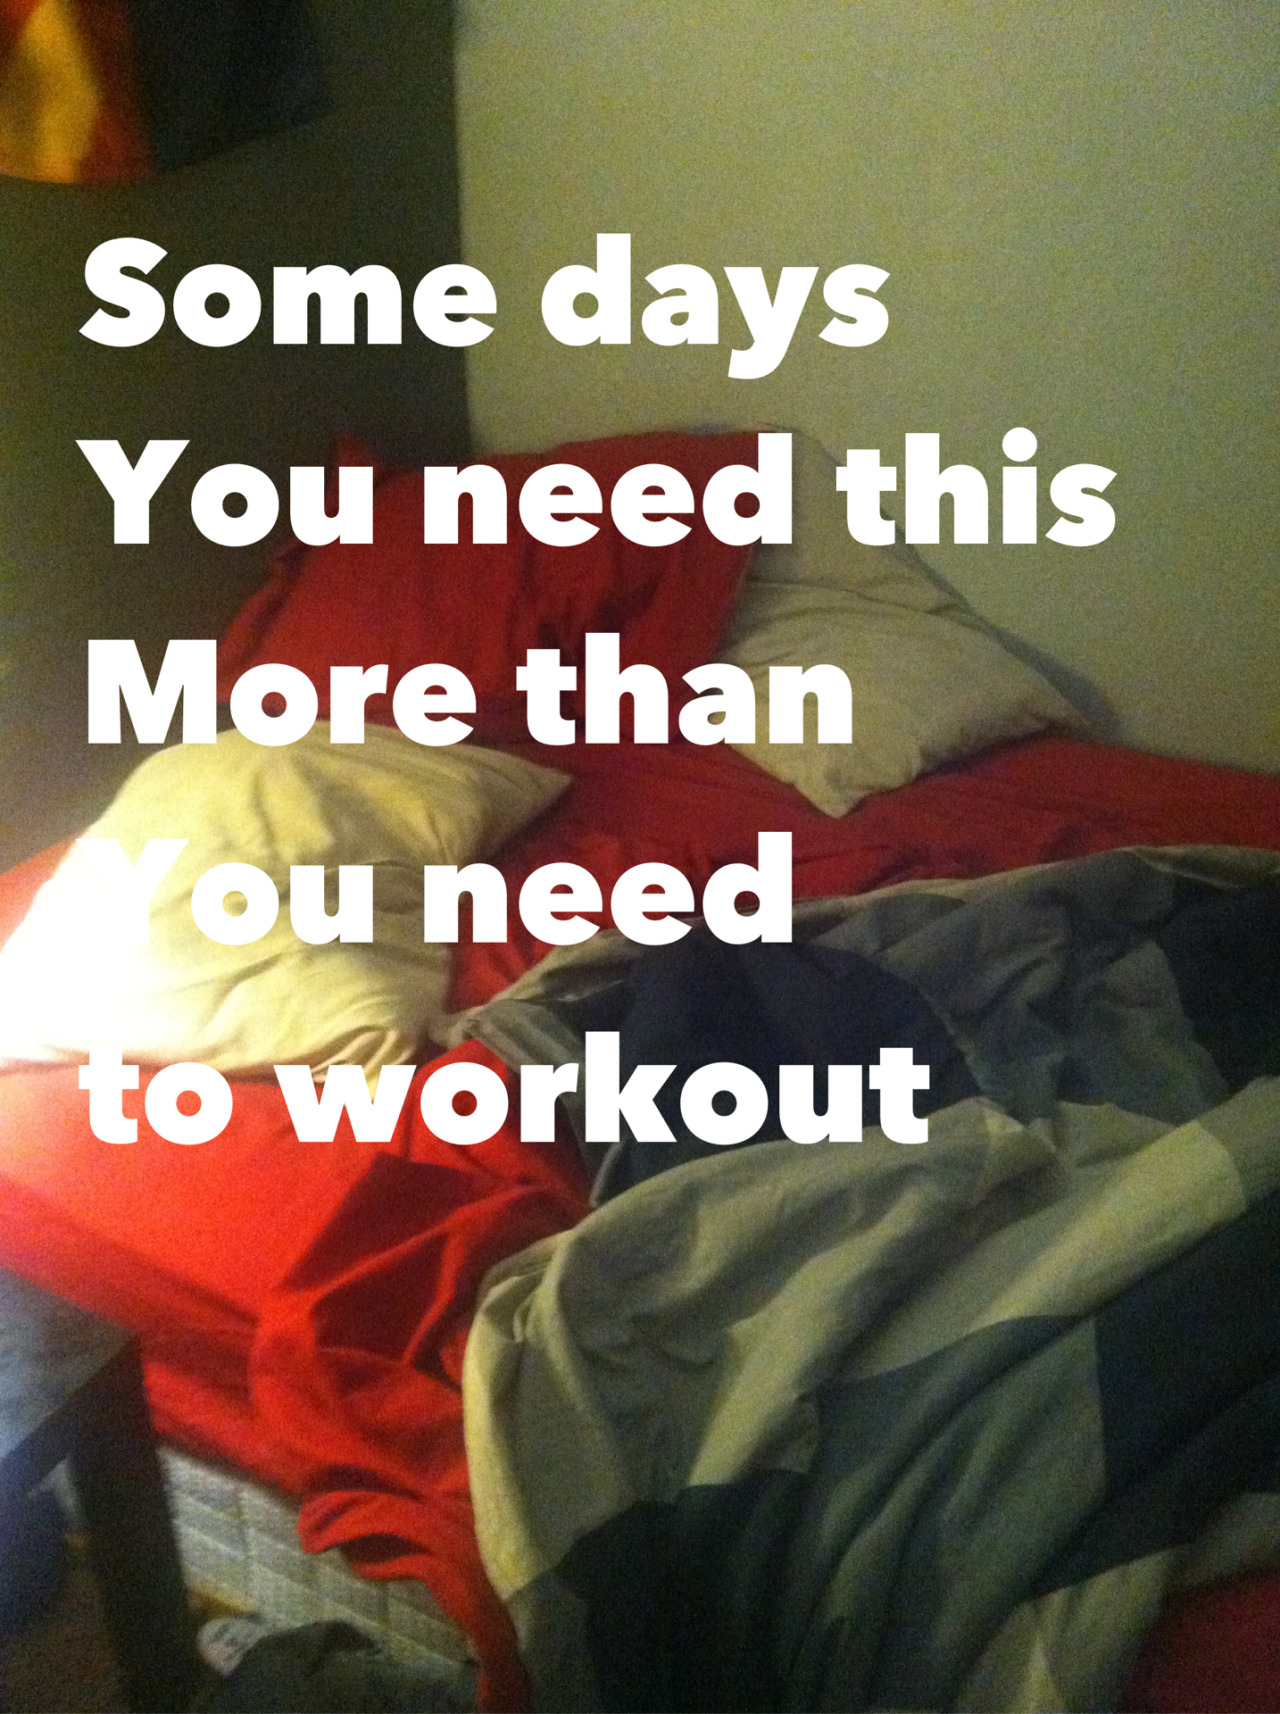 fitnessluvr:  Yes! So true…listen to your body. I did the last two days, you can too..